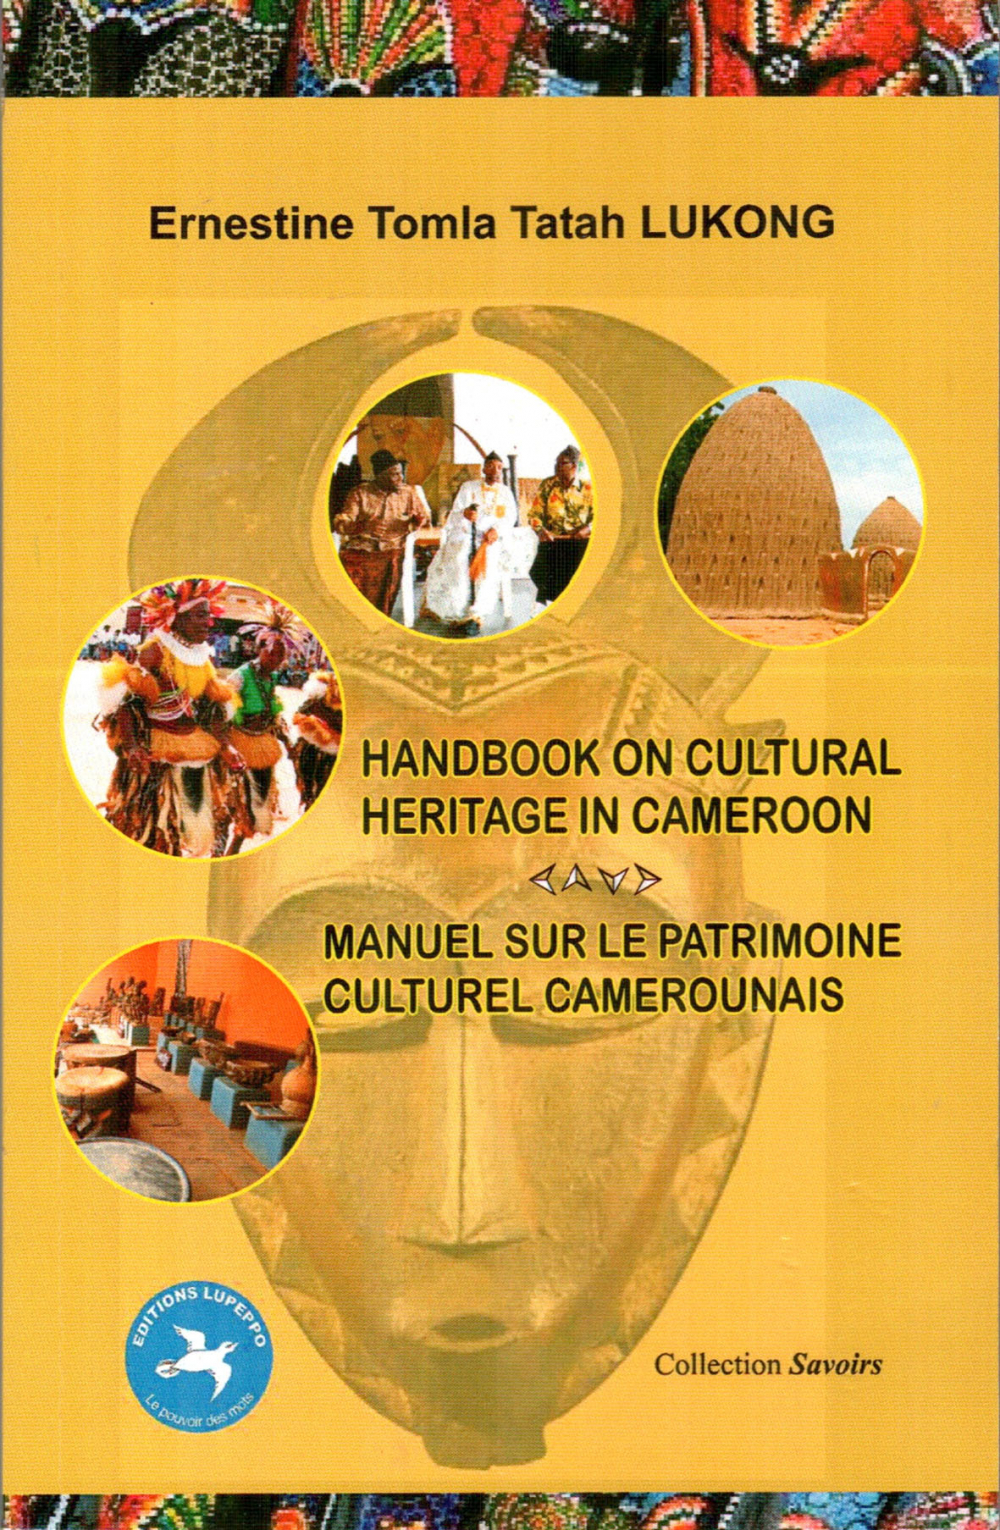 « Handbook On Cultural Heritage In Cameroon/Manuel sur le patrimoine culturel camerounais », Ernestine Tomla Tatah Lukong, Editions Lupeppo, Collection Savoirs, 2020.